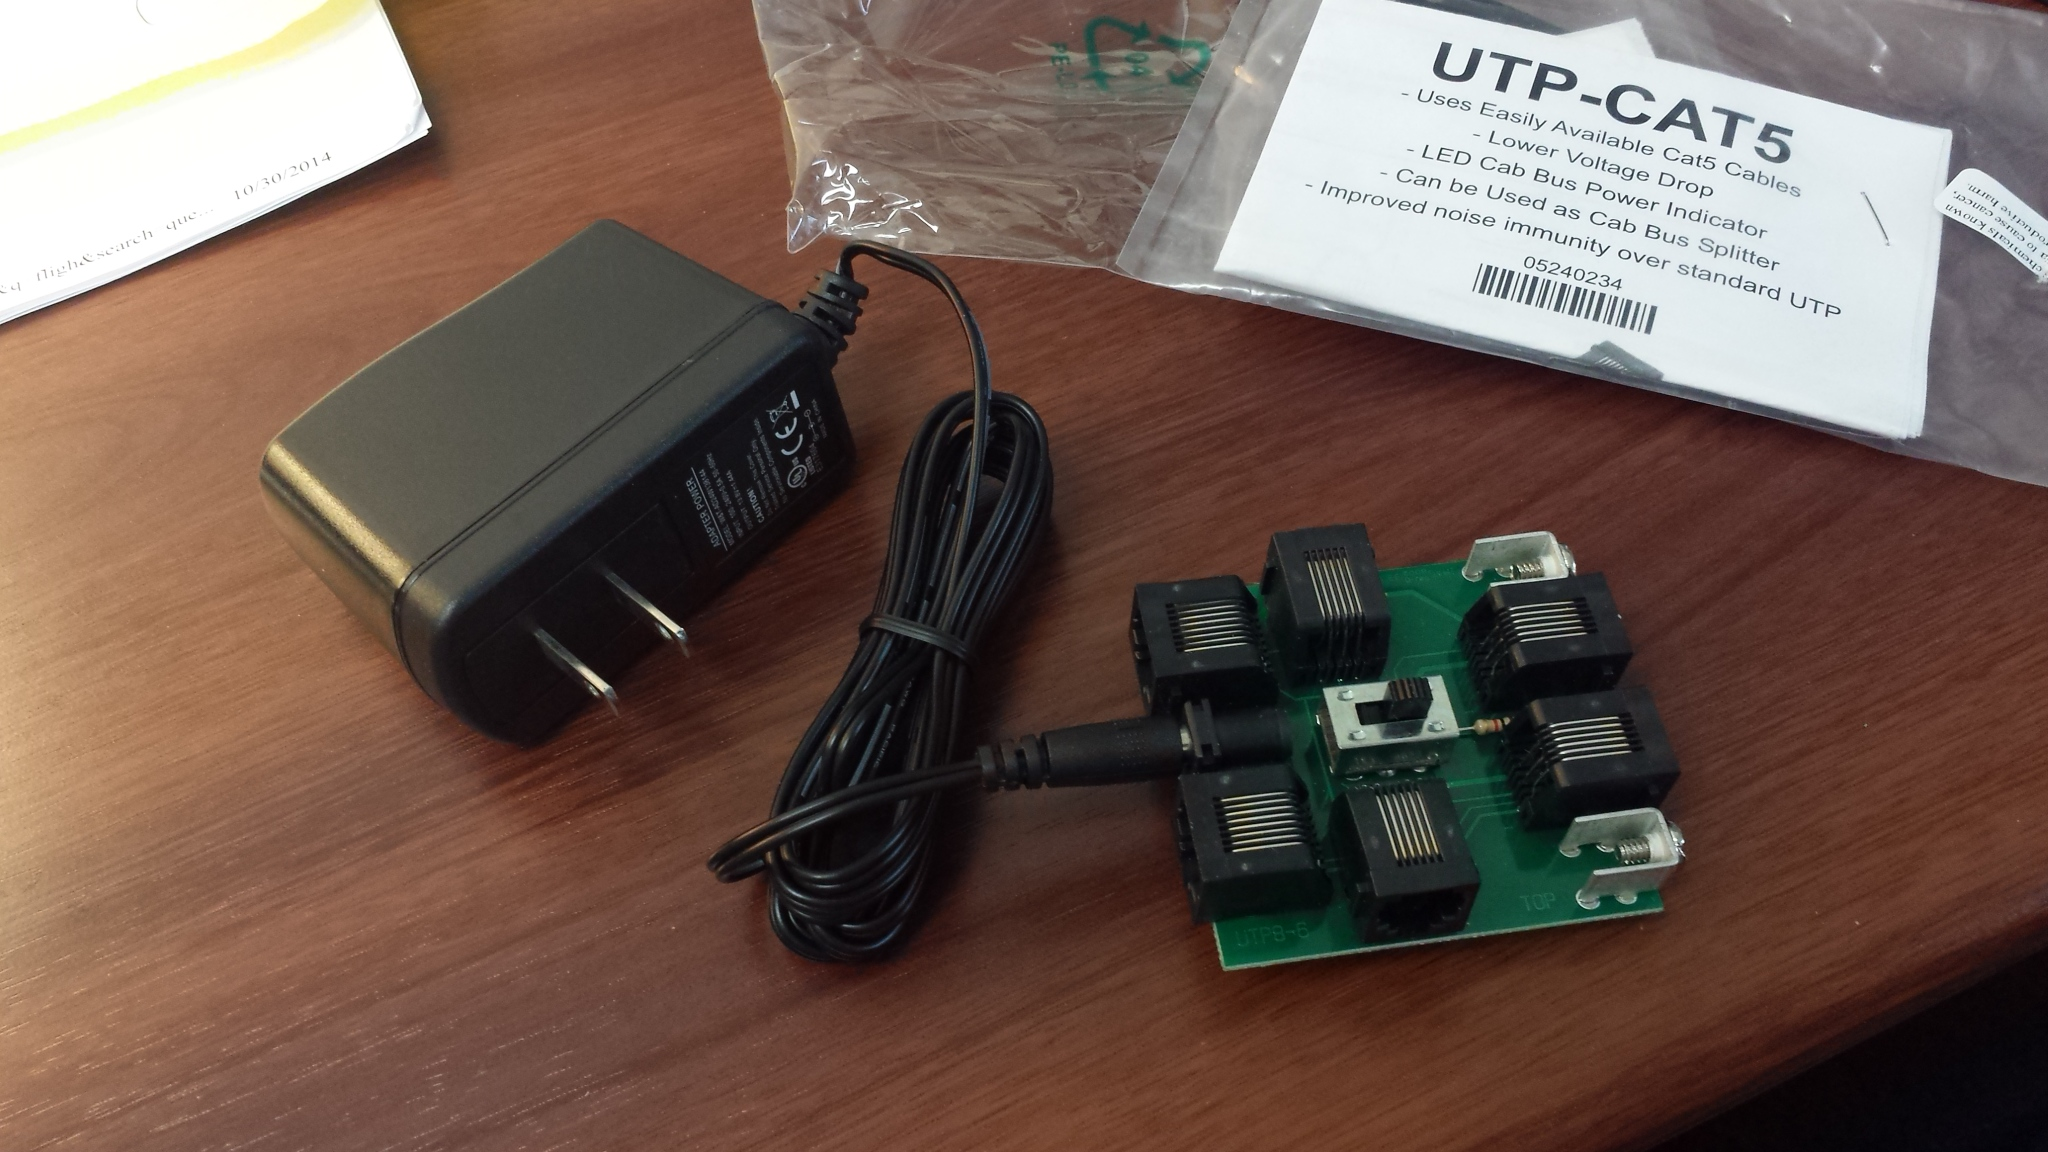 Utp Cat5 Version 2 Welcome To The Nce Information Station Cat 5 Wire Harness Overall Goal Is This A Minimum Of 8v Dc As Measured On Panel And Cab Bus Cables Between Pins Black Yellow